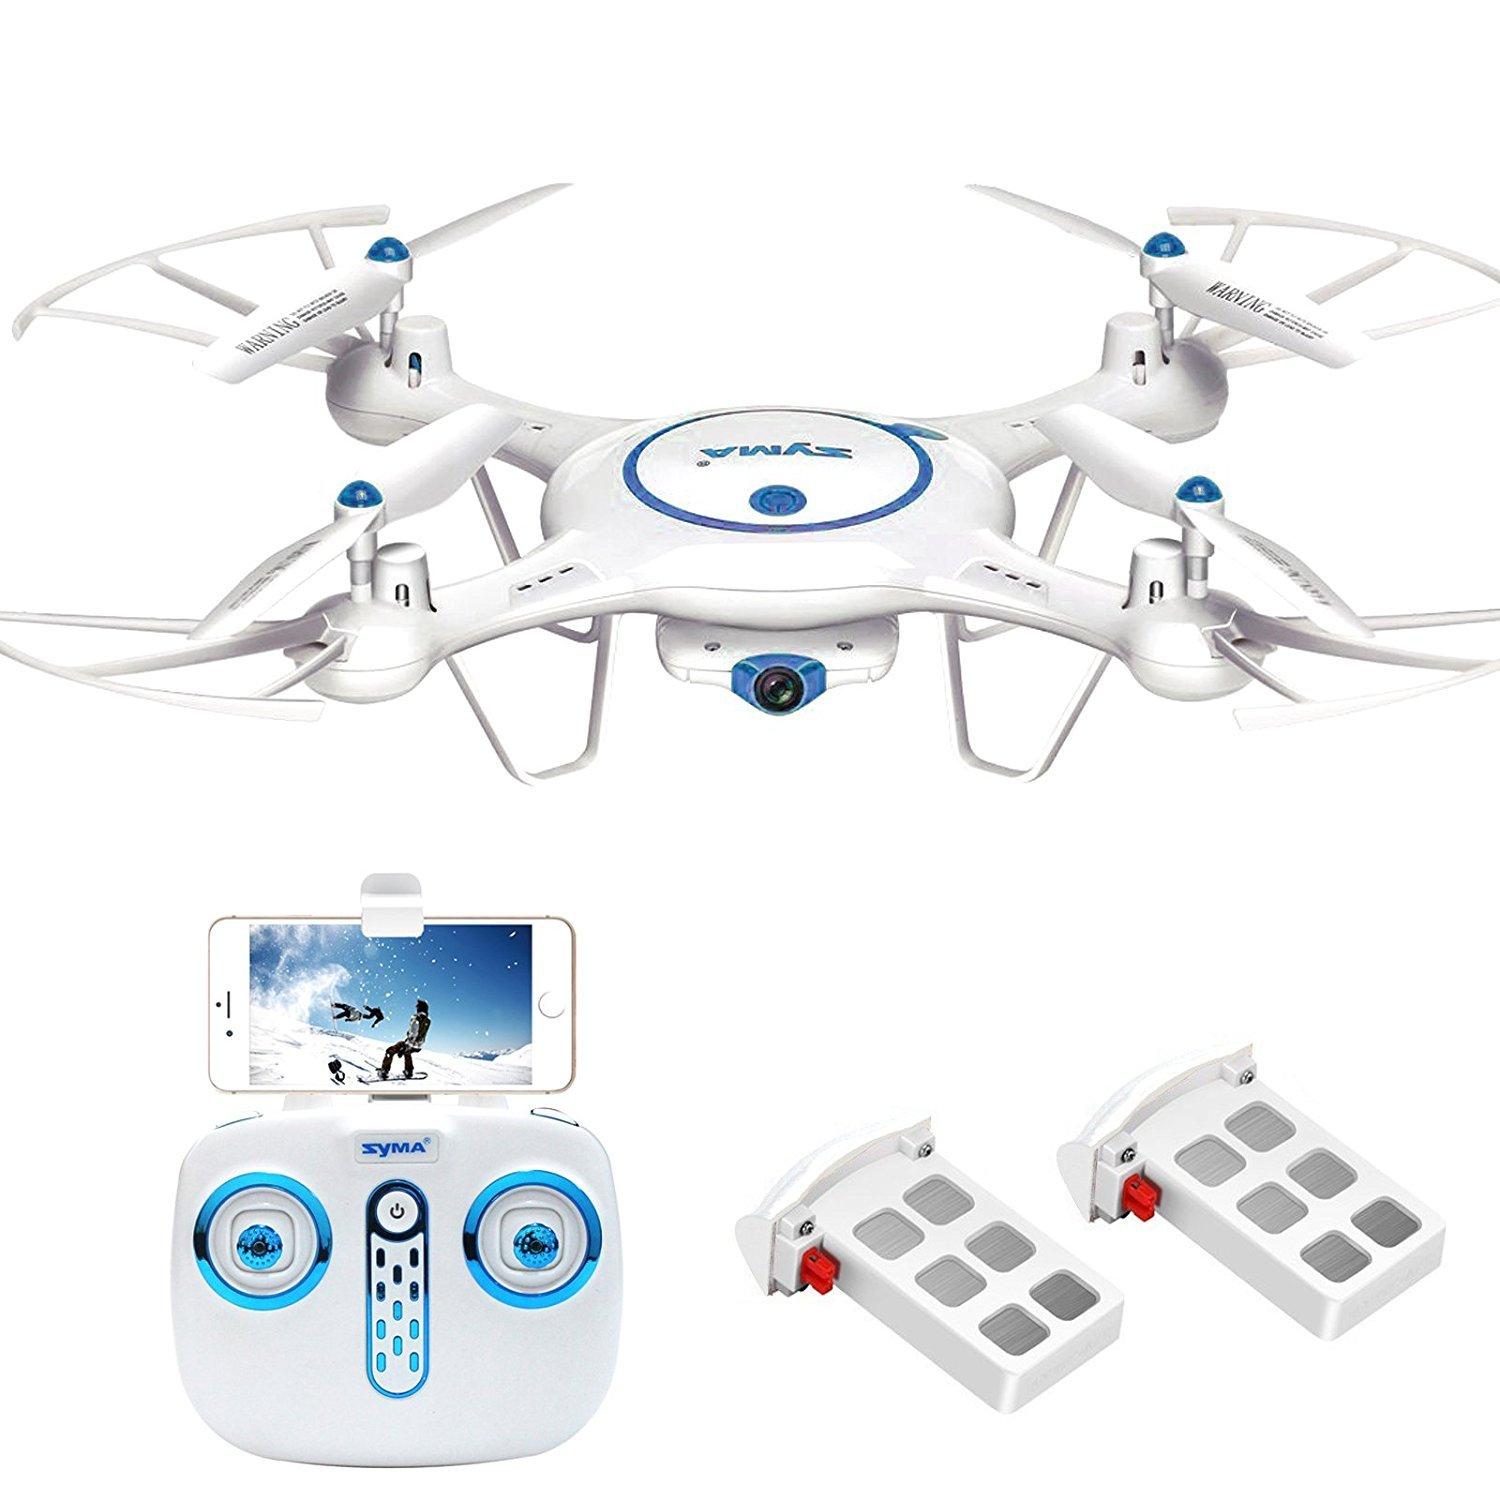 Syma X5UW Wifi FPV Drone with 720P HD Camera 2.4Ghz RC Quadcopter with Flight Route Setting and Altitude Hold Function Bonus Battery Included